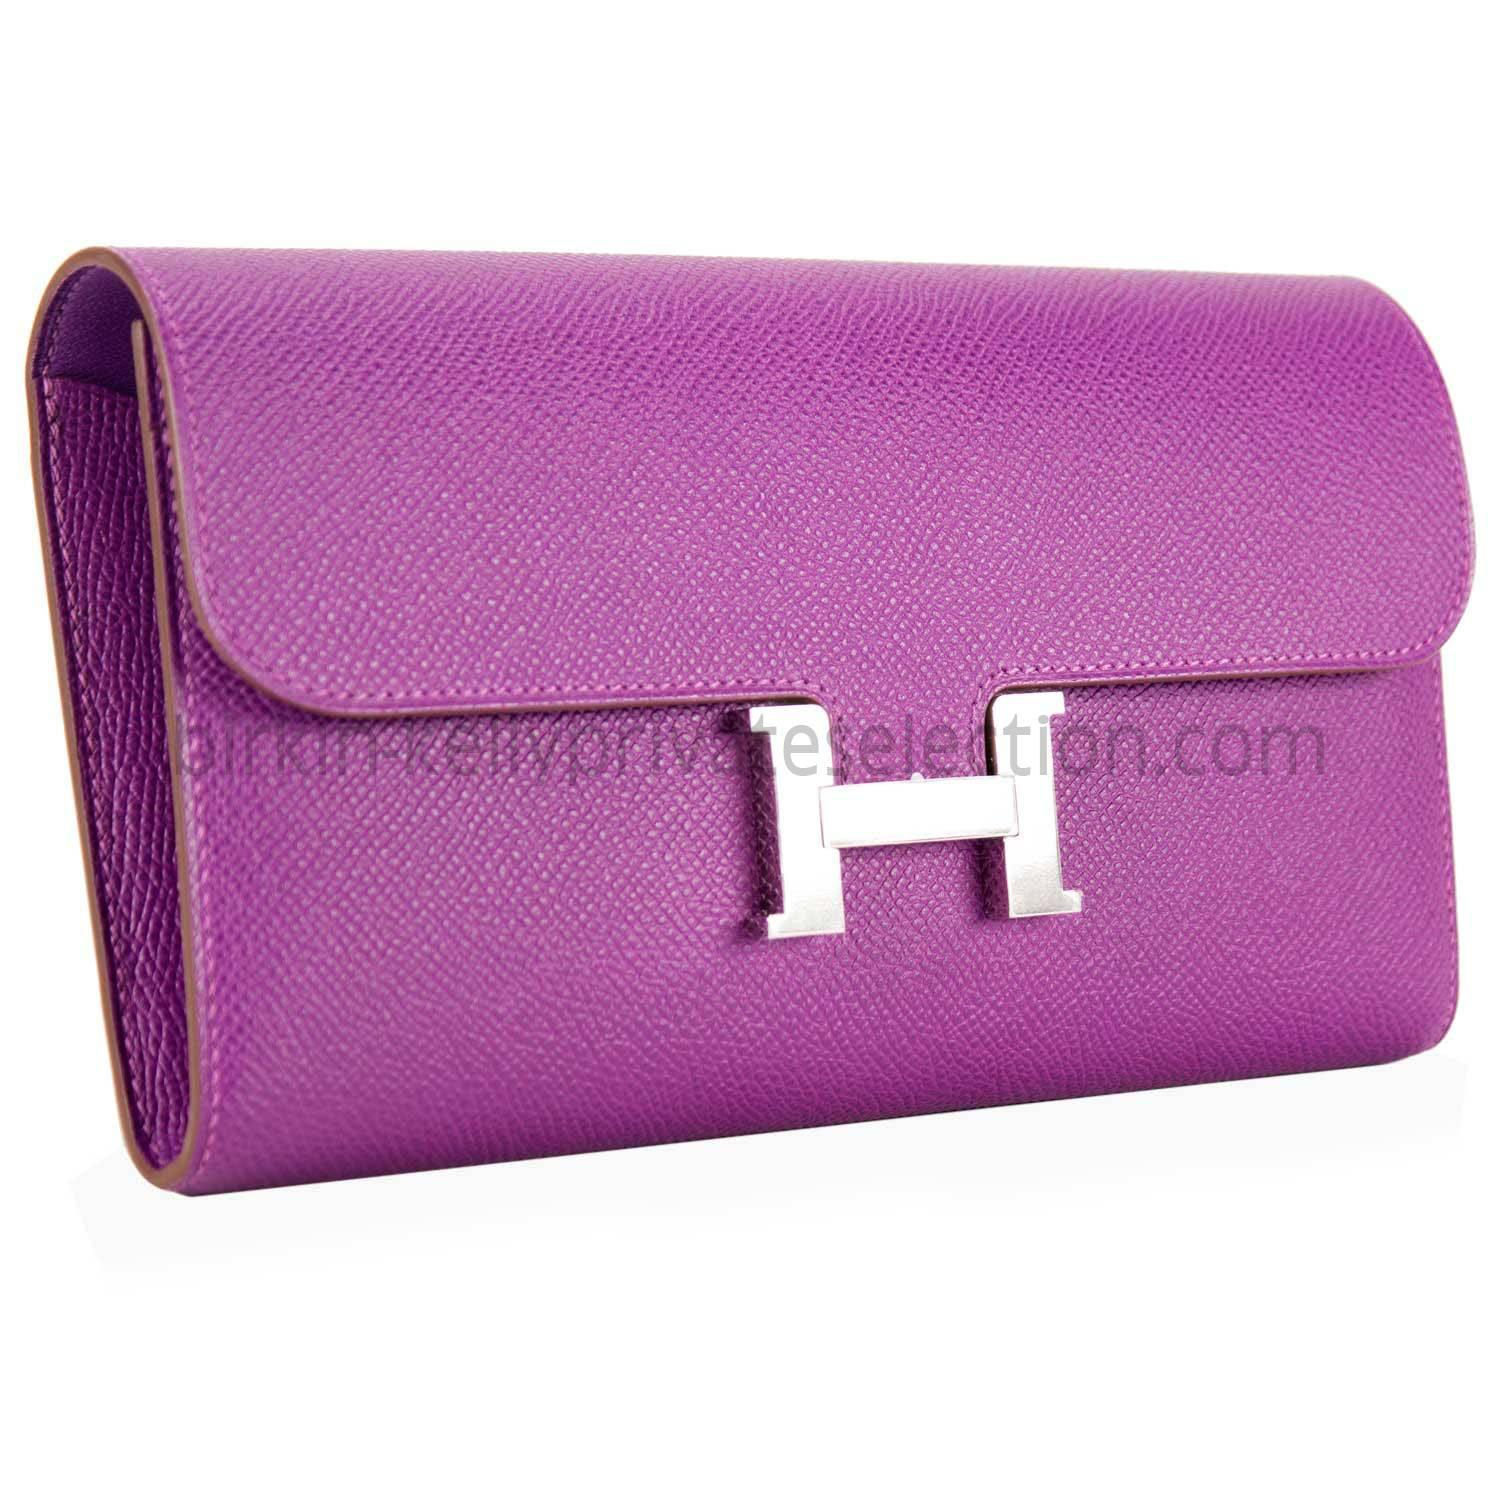 red hermes kelly bag - hermes zip computer portfolio in blue paradise evercolor calfskin ...